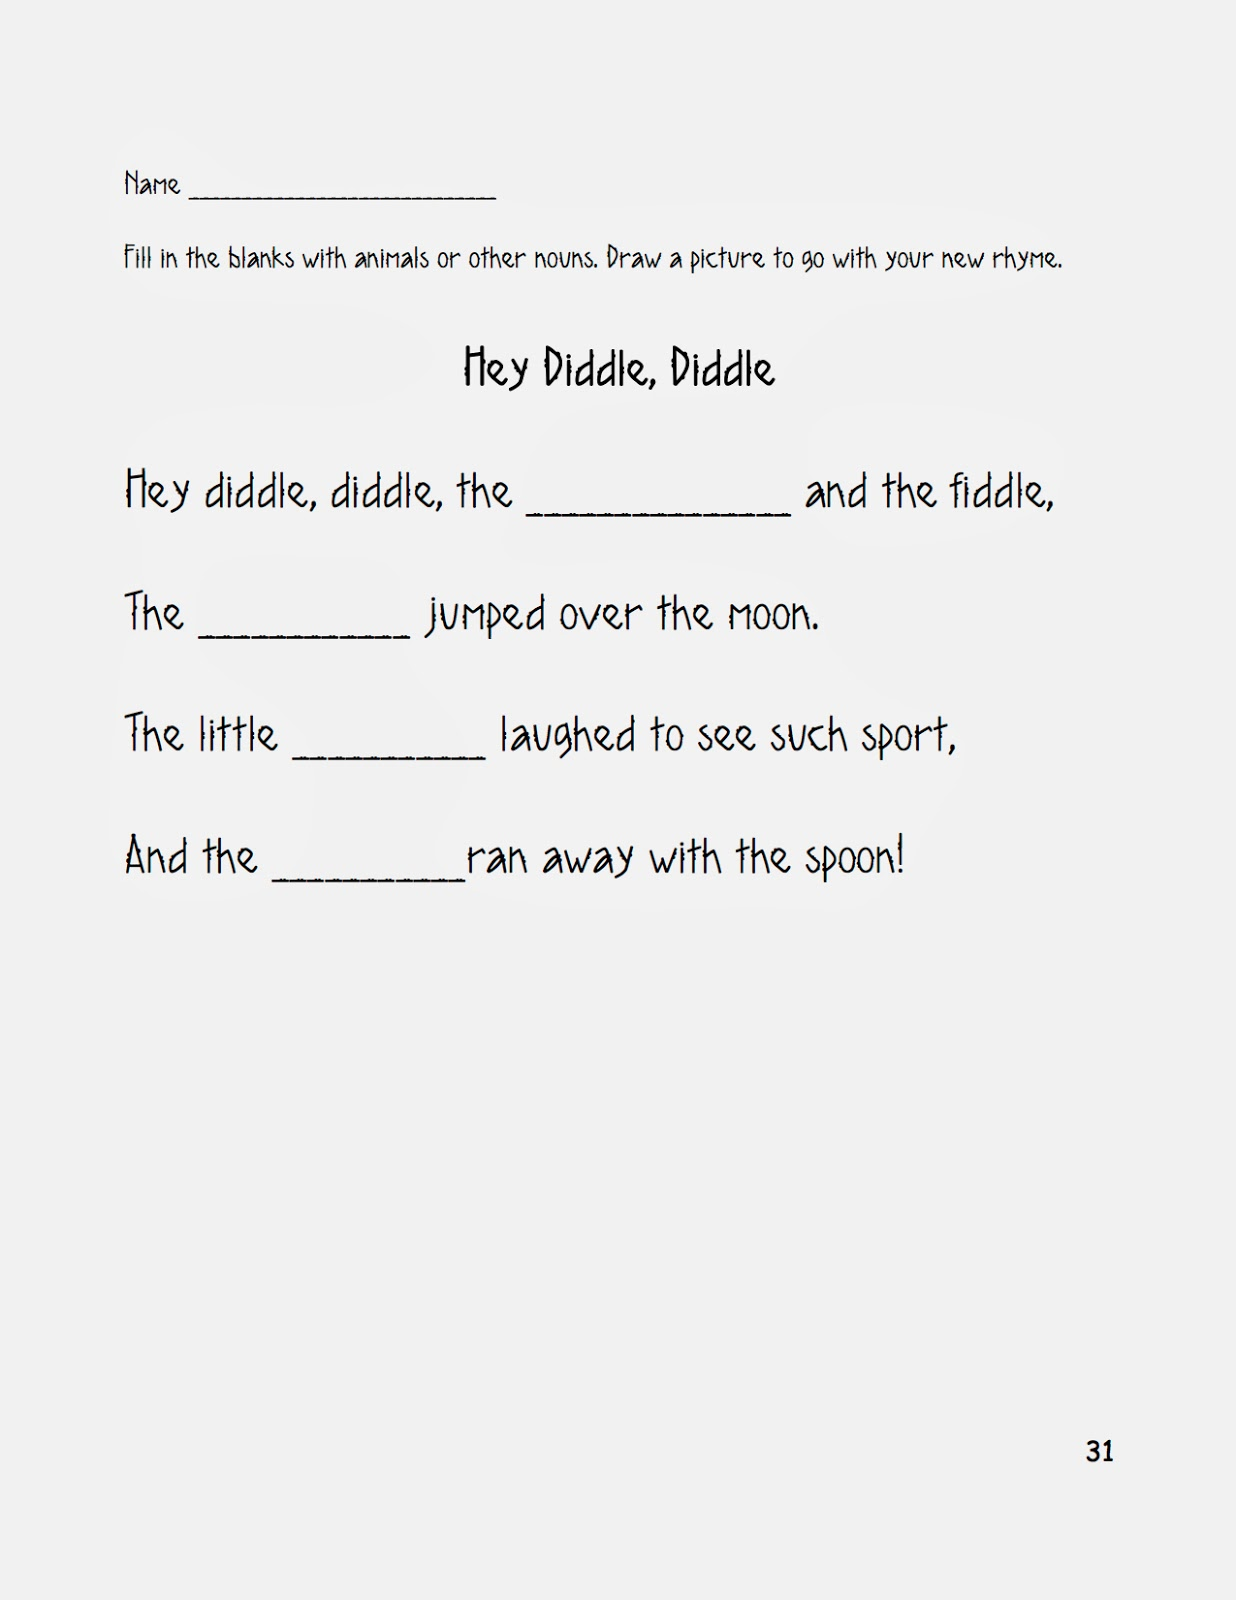 worksheet Beethoven Lives Upstairs Worksheet nhcs music education november 2013 at the closing of this lesson i ask students to create a new version hey diddle diddle